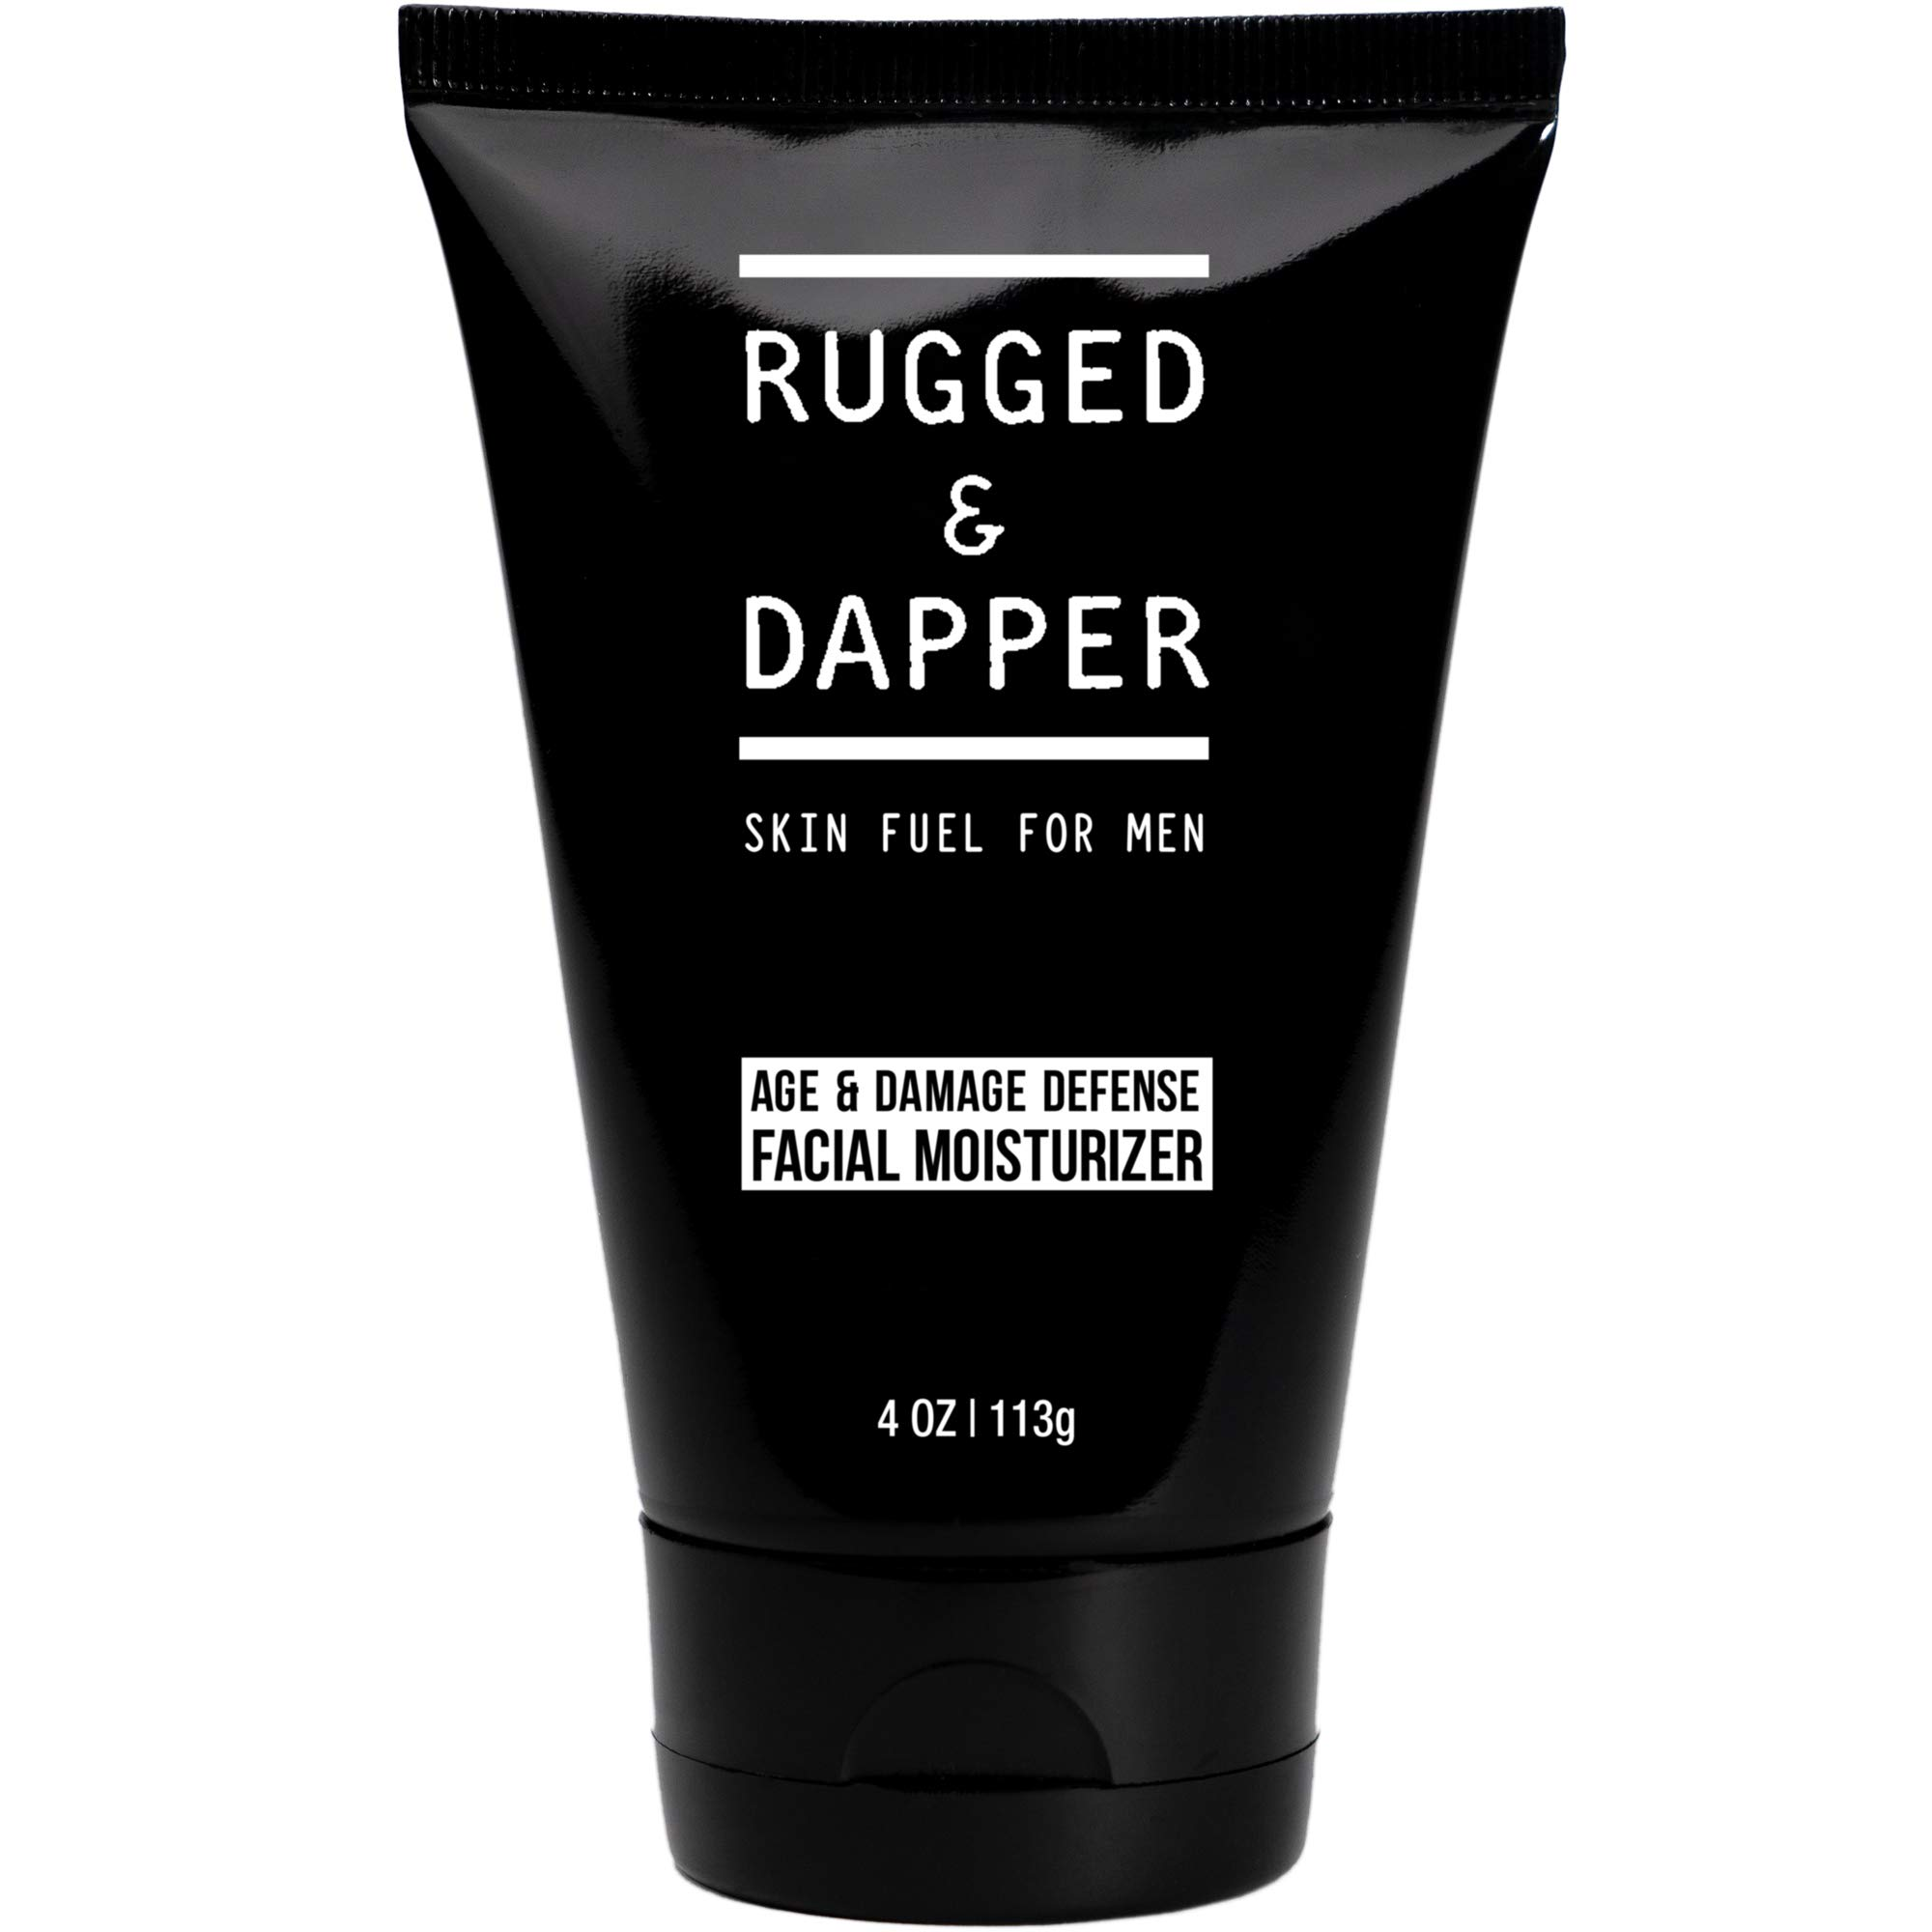 RUGGED & DAPPER Age + Damage Defense Facial Moisturizer | Dual Purpose Non-Toxic Face Lotion & Aftershave for Men - 4 Oz